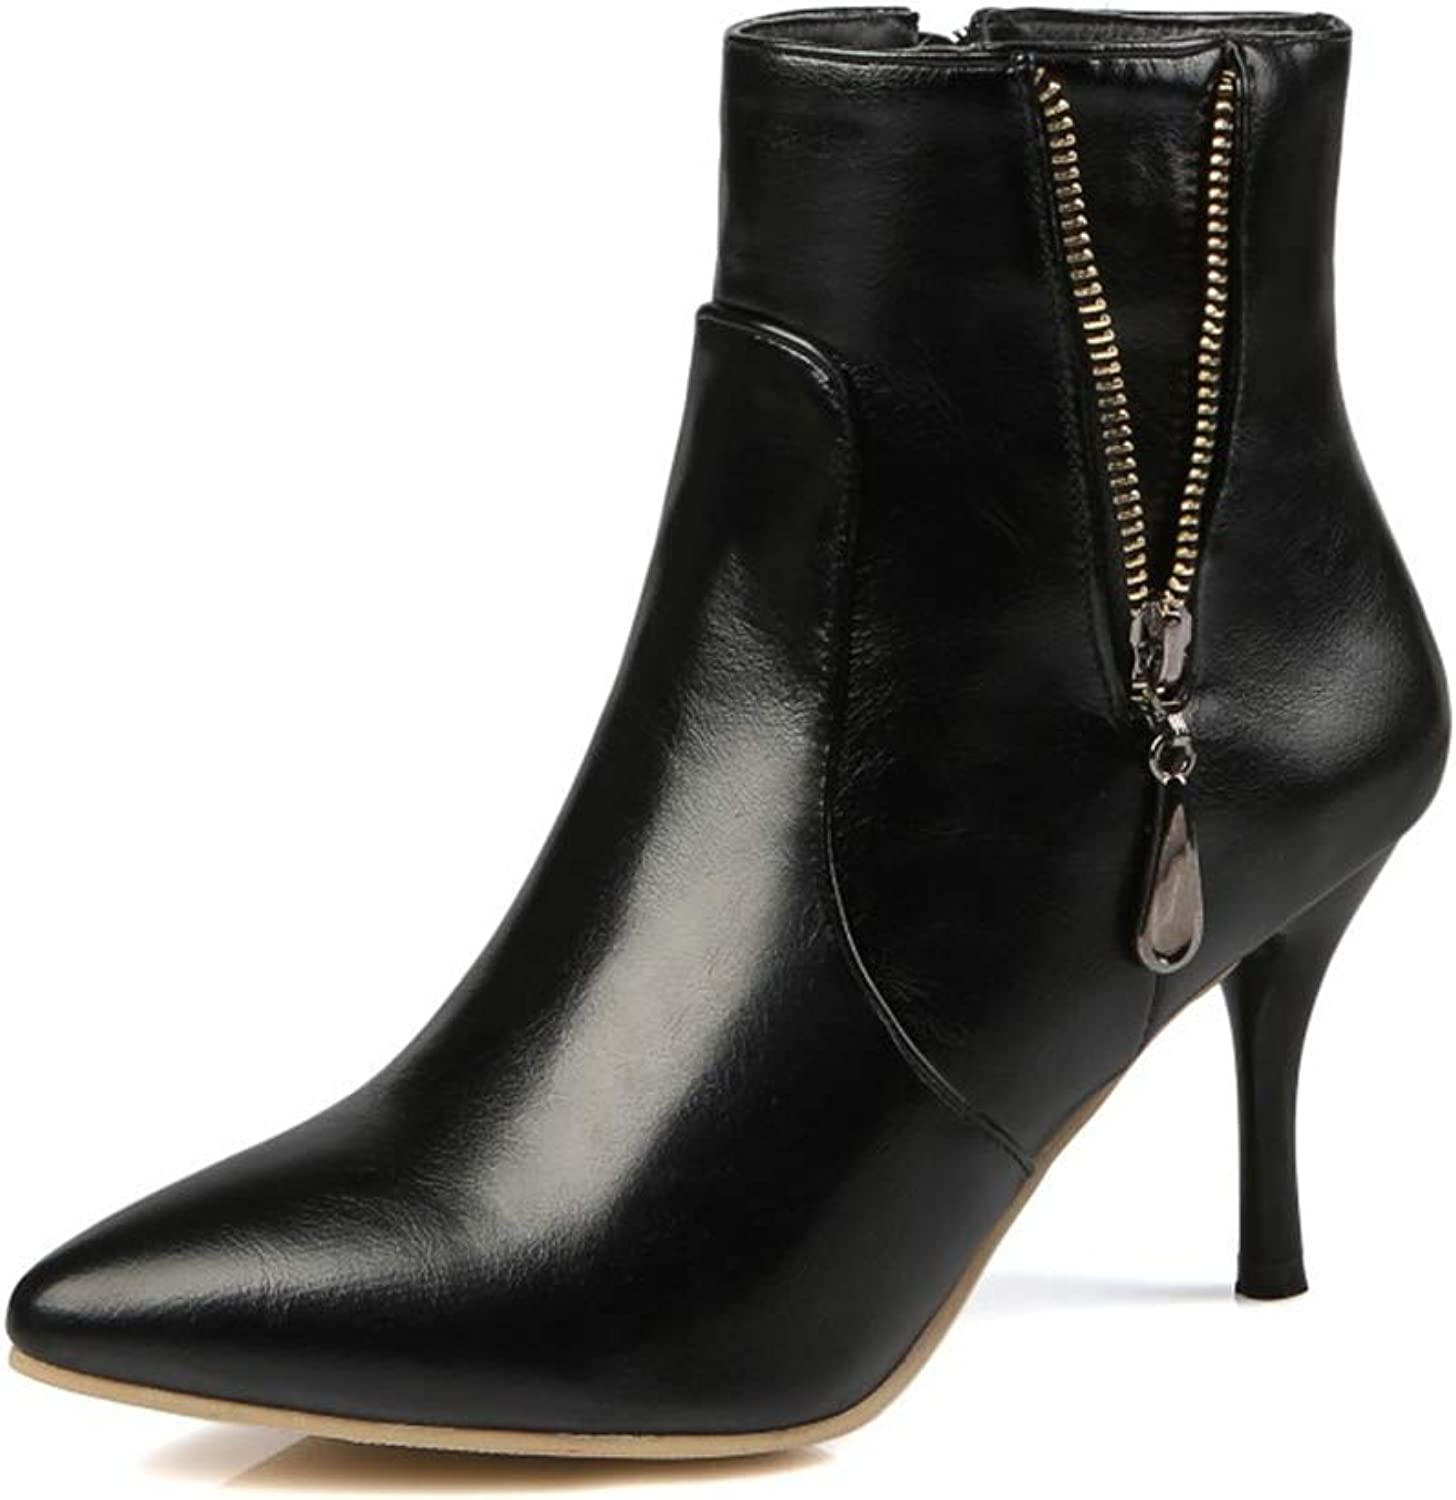 Super color Women's Pointy Toe Ankle Knight Boots with Zipper - Stretchy Inside Zip up - Stiletto Kitten Heels